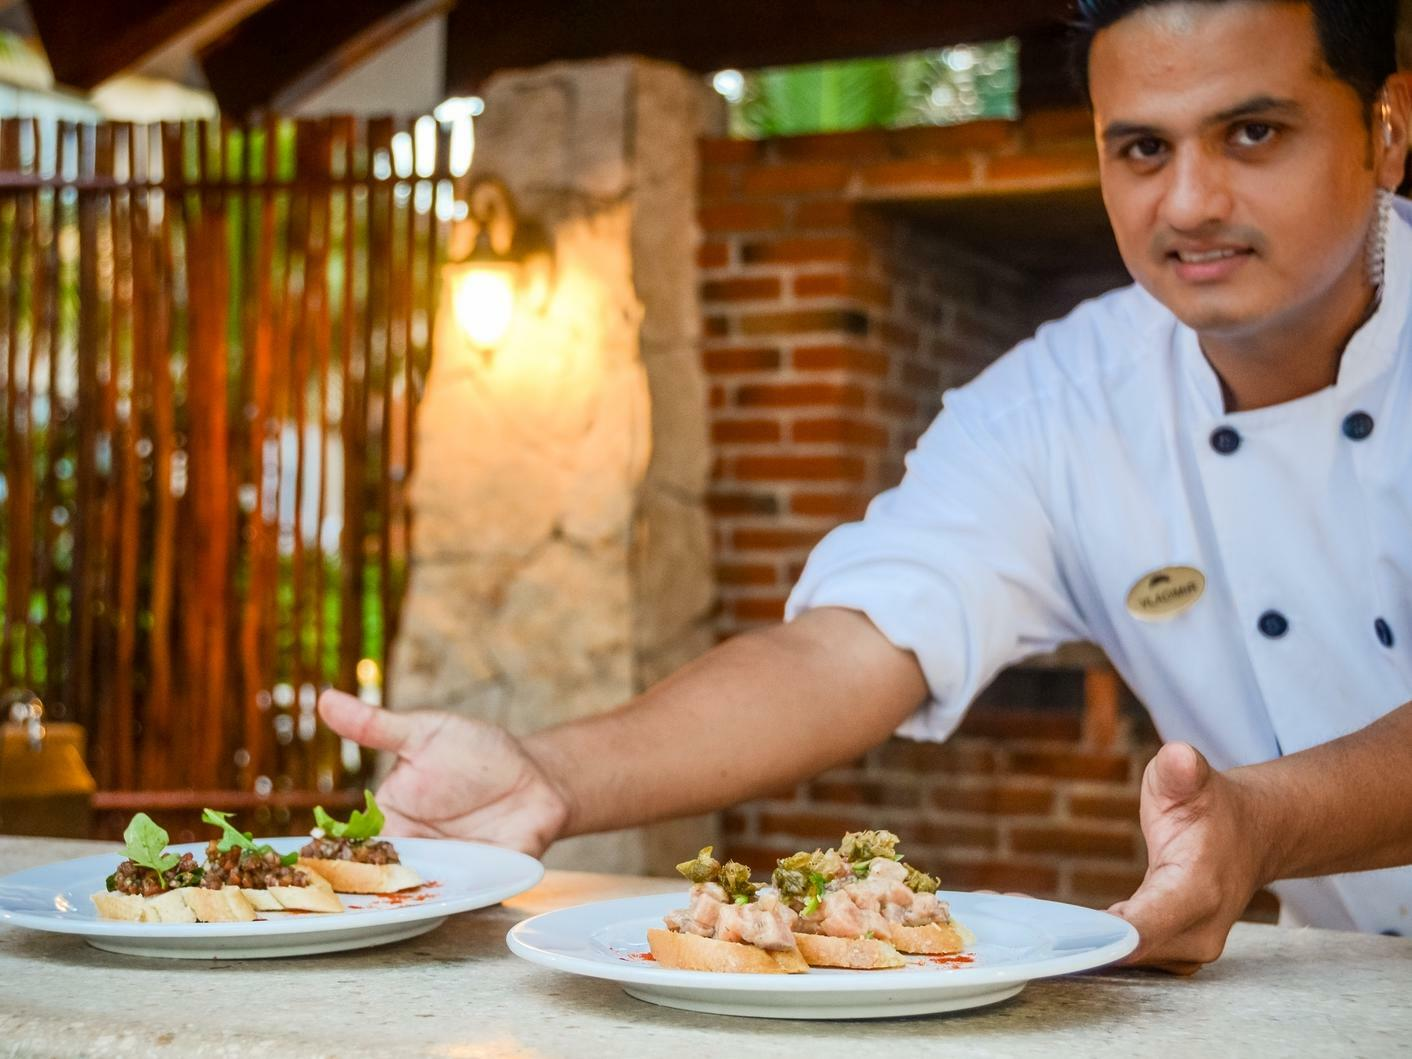 chef serving plates of food